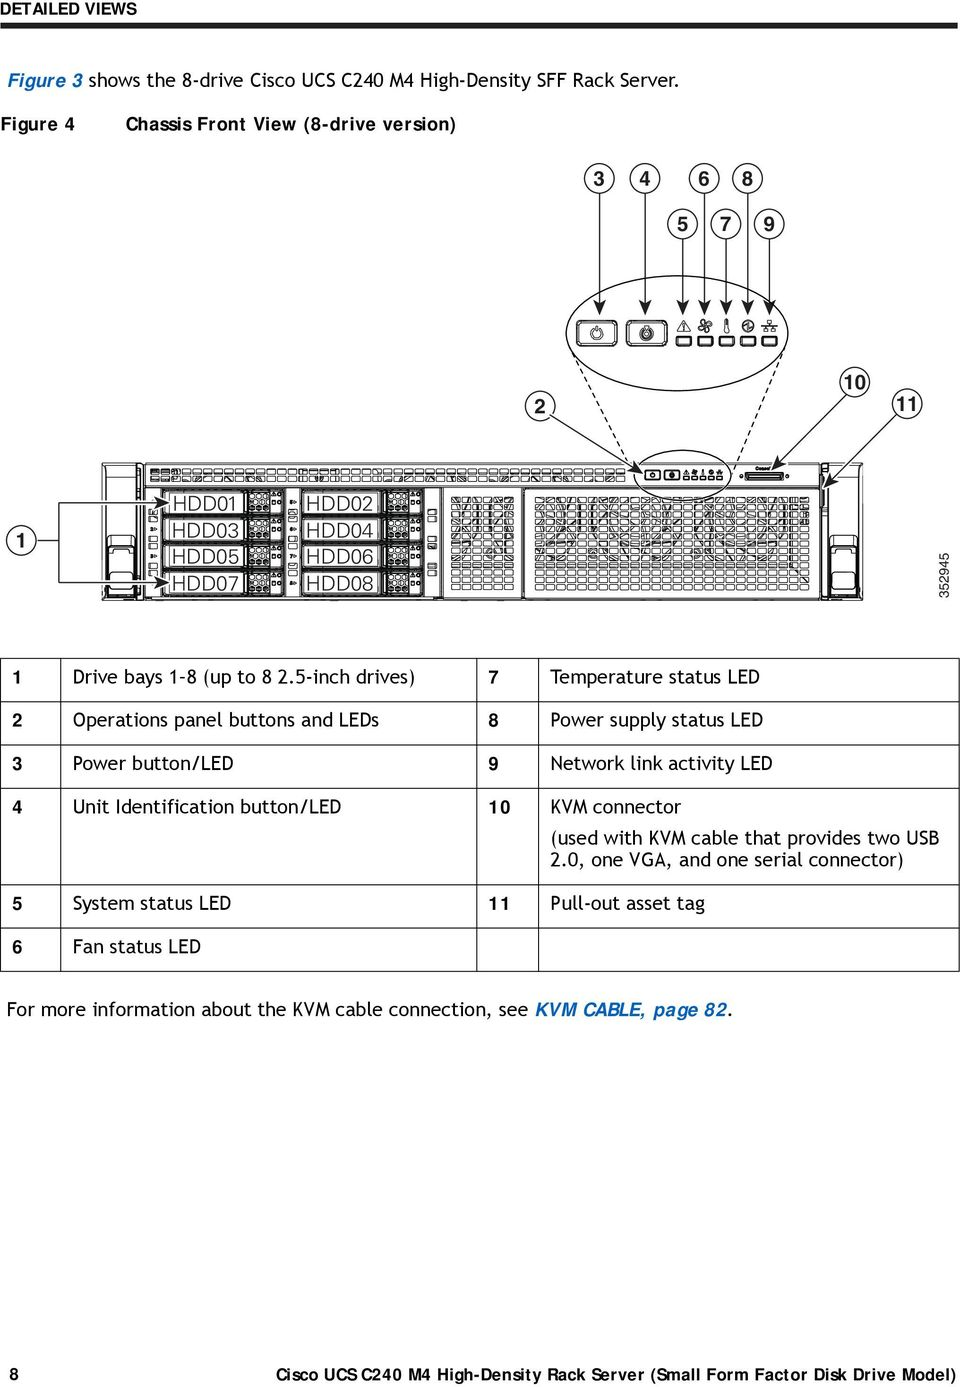 Cisco Ucs C240 M4 High Density Rack Server Small Form Factor Disk Power Supply Wiring Diagram 5 Inch Drives 7 Temperature Status Led 2 Operations Panel Buttons And Leds 8